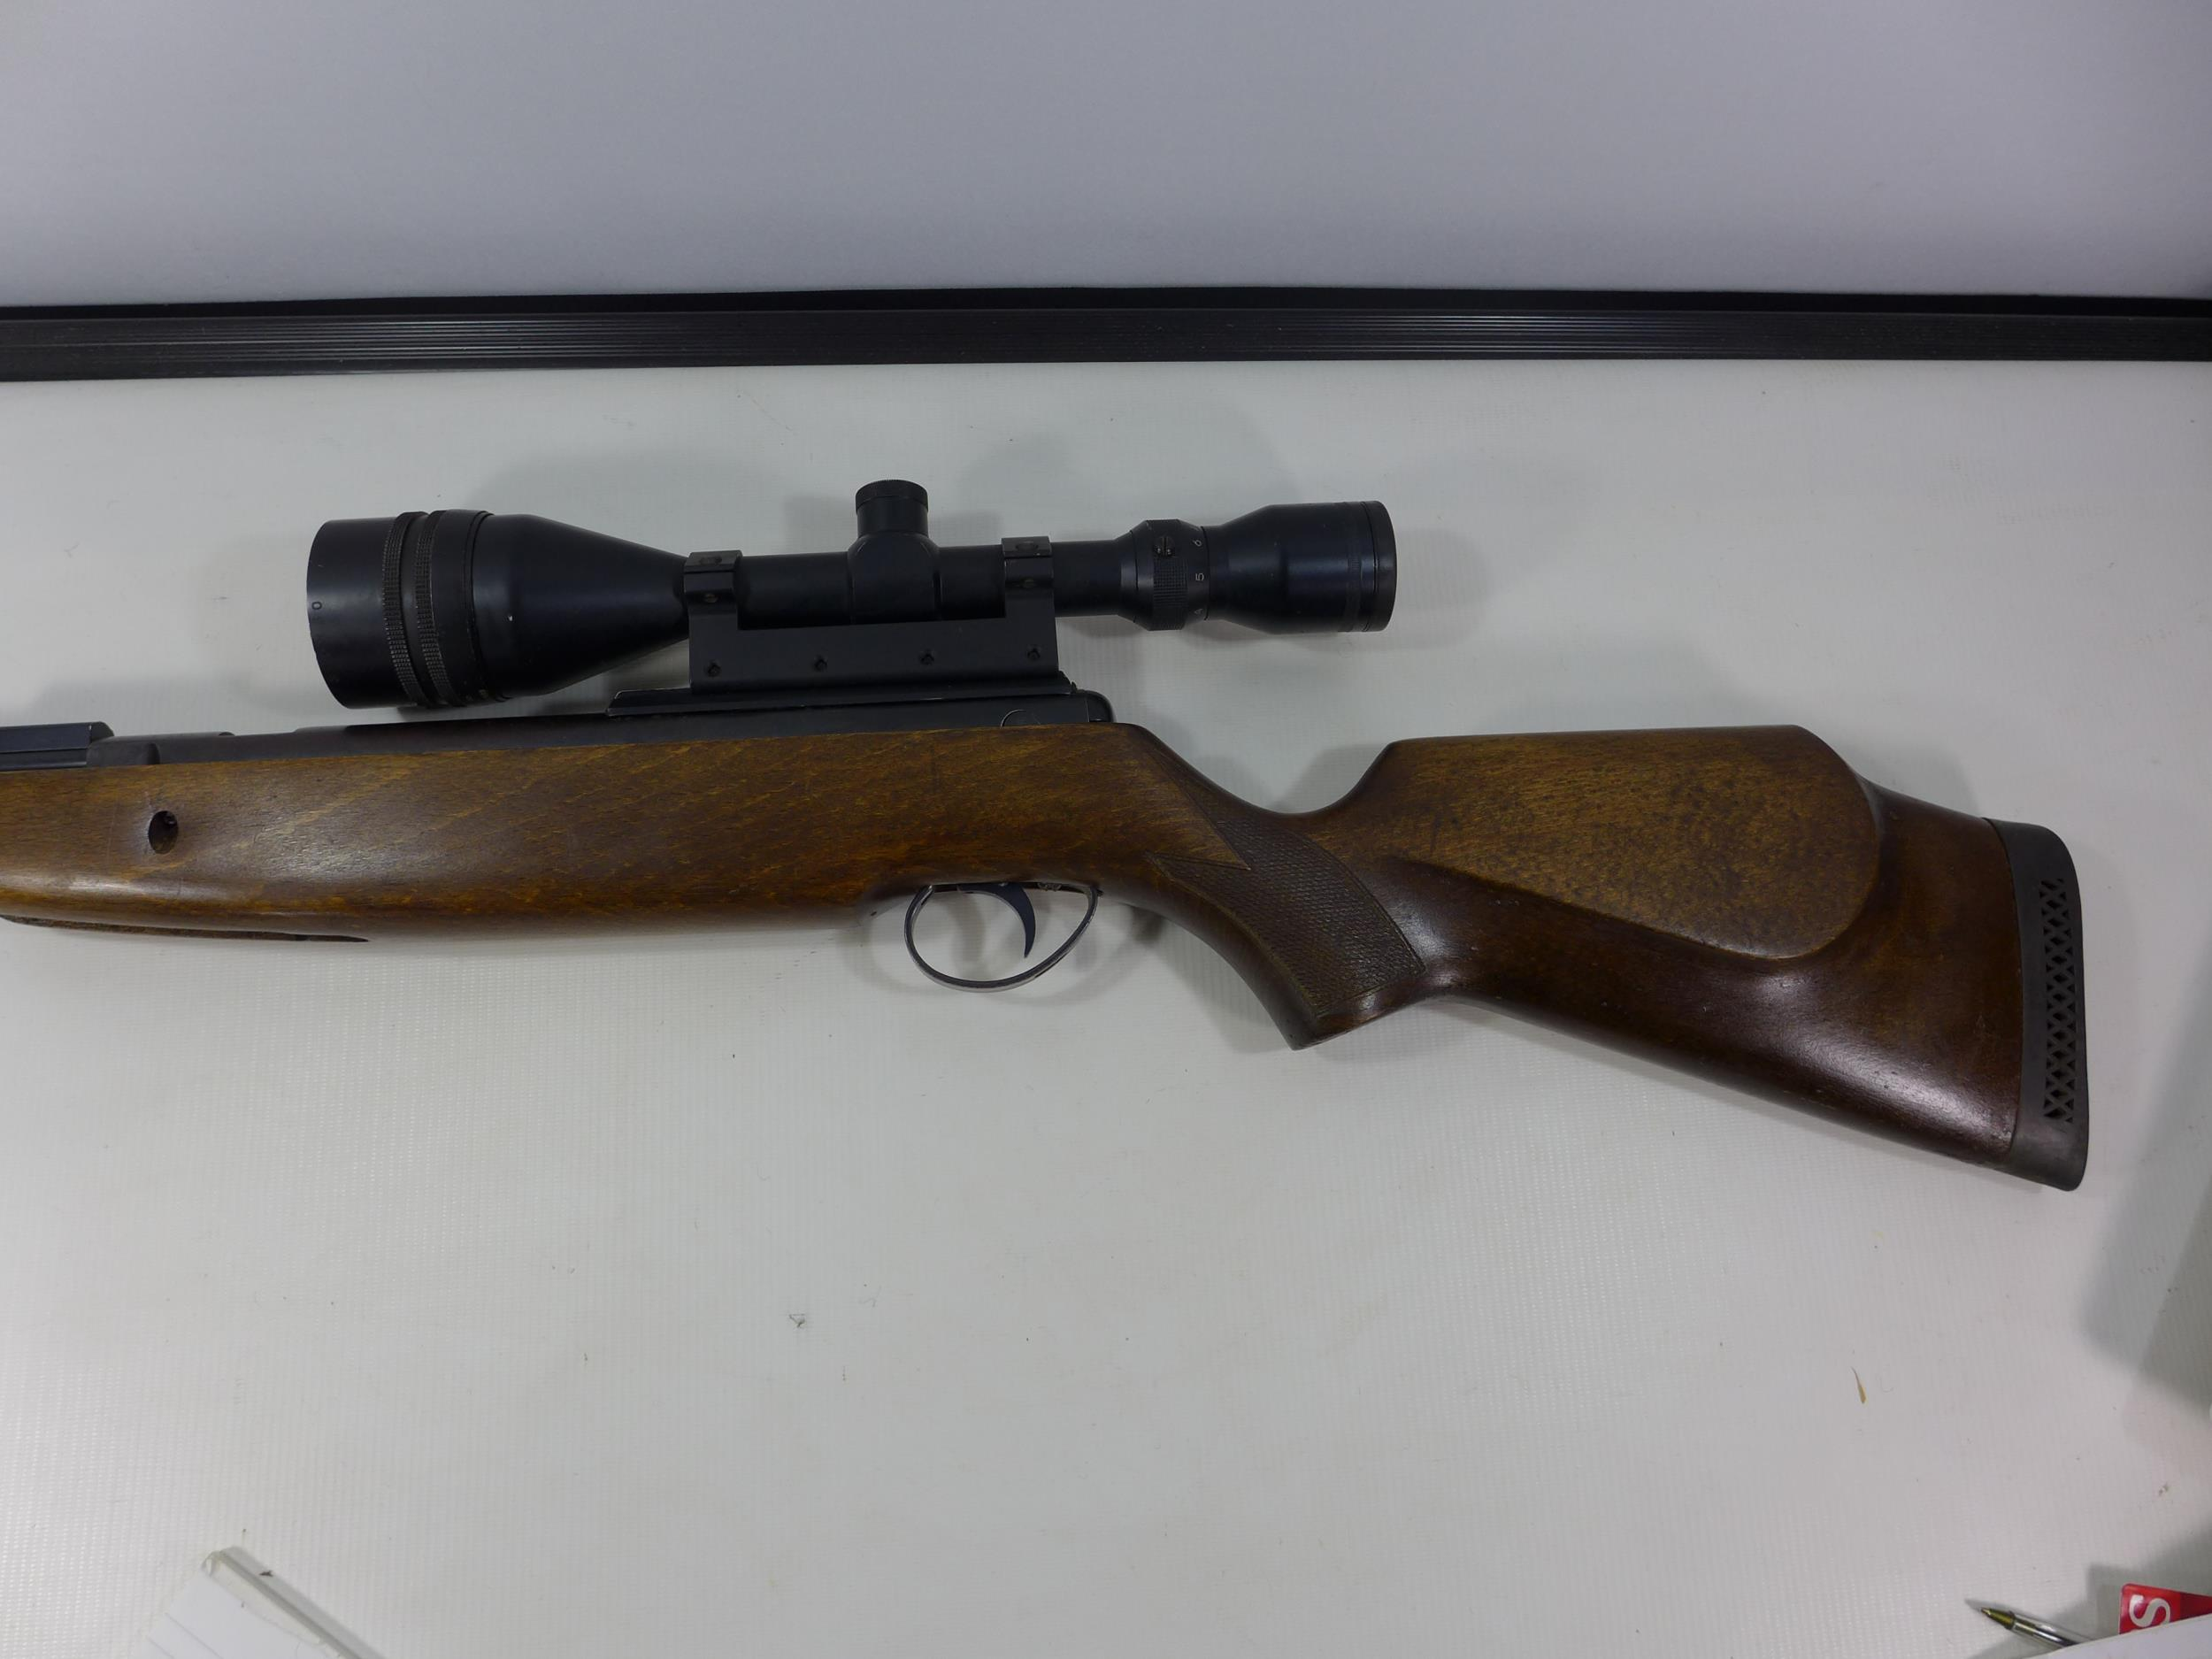 A .22 CALIBRE UNDERLEVER AIR RIFLE WITH SILENCER, LENGTH 47CM, WITH TASCO 9X50 TELESCOPIC SIGHTS - Image 4 of 7